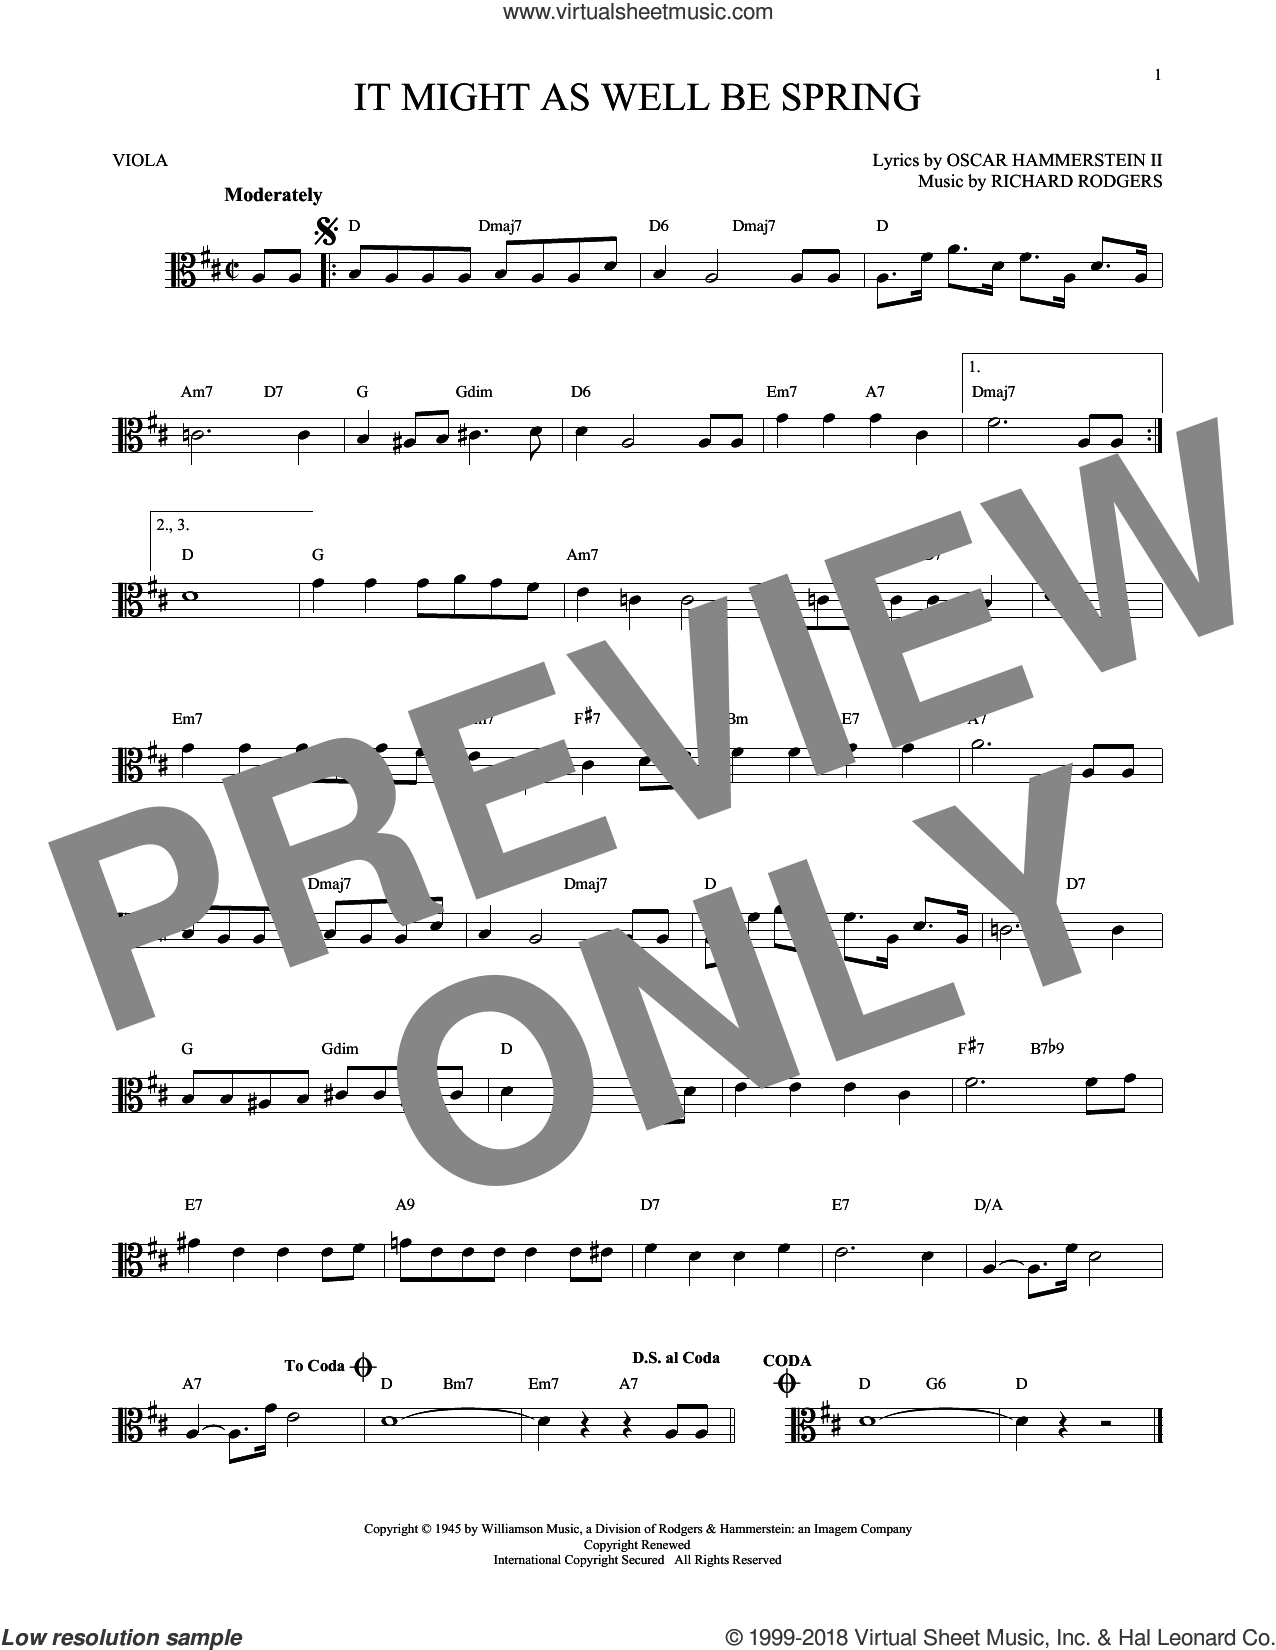 It Might As Well Be Spring sheet music for viola solo by Rodgers & Hammerstein, Oscar II Hammerstein and Richard Rodgers, intermediate skill level